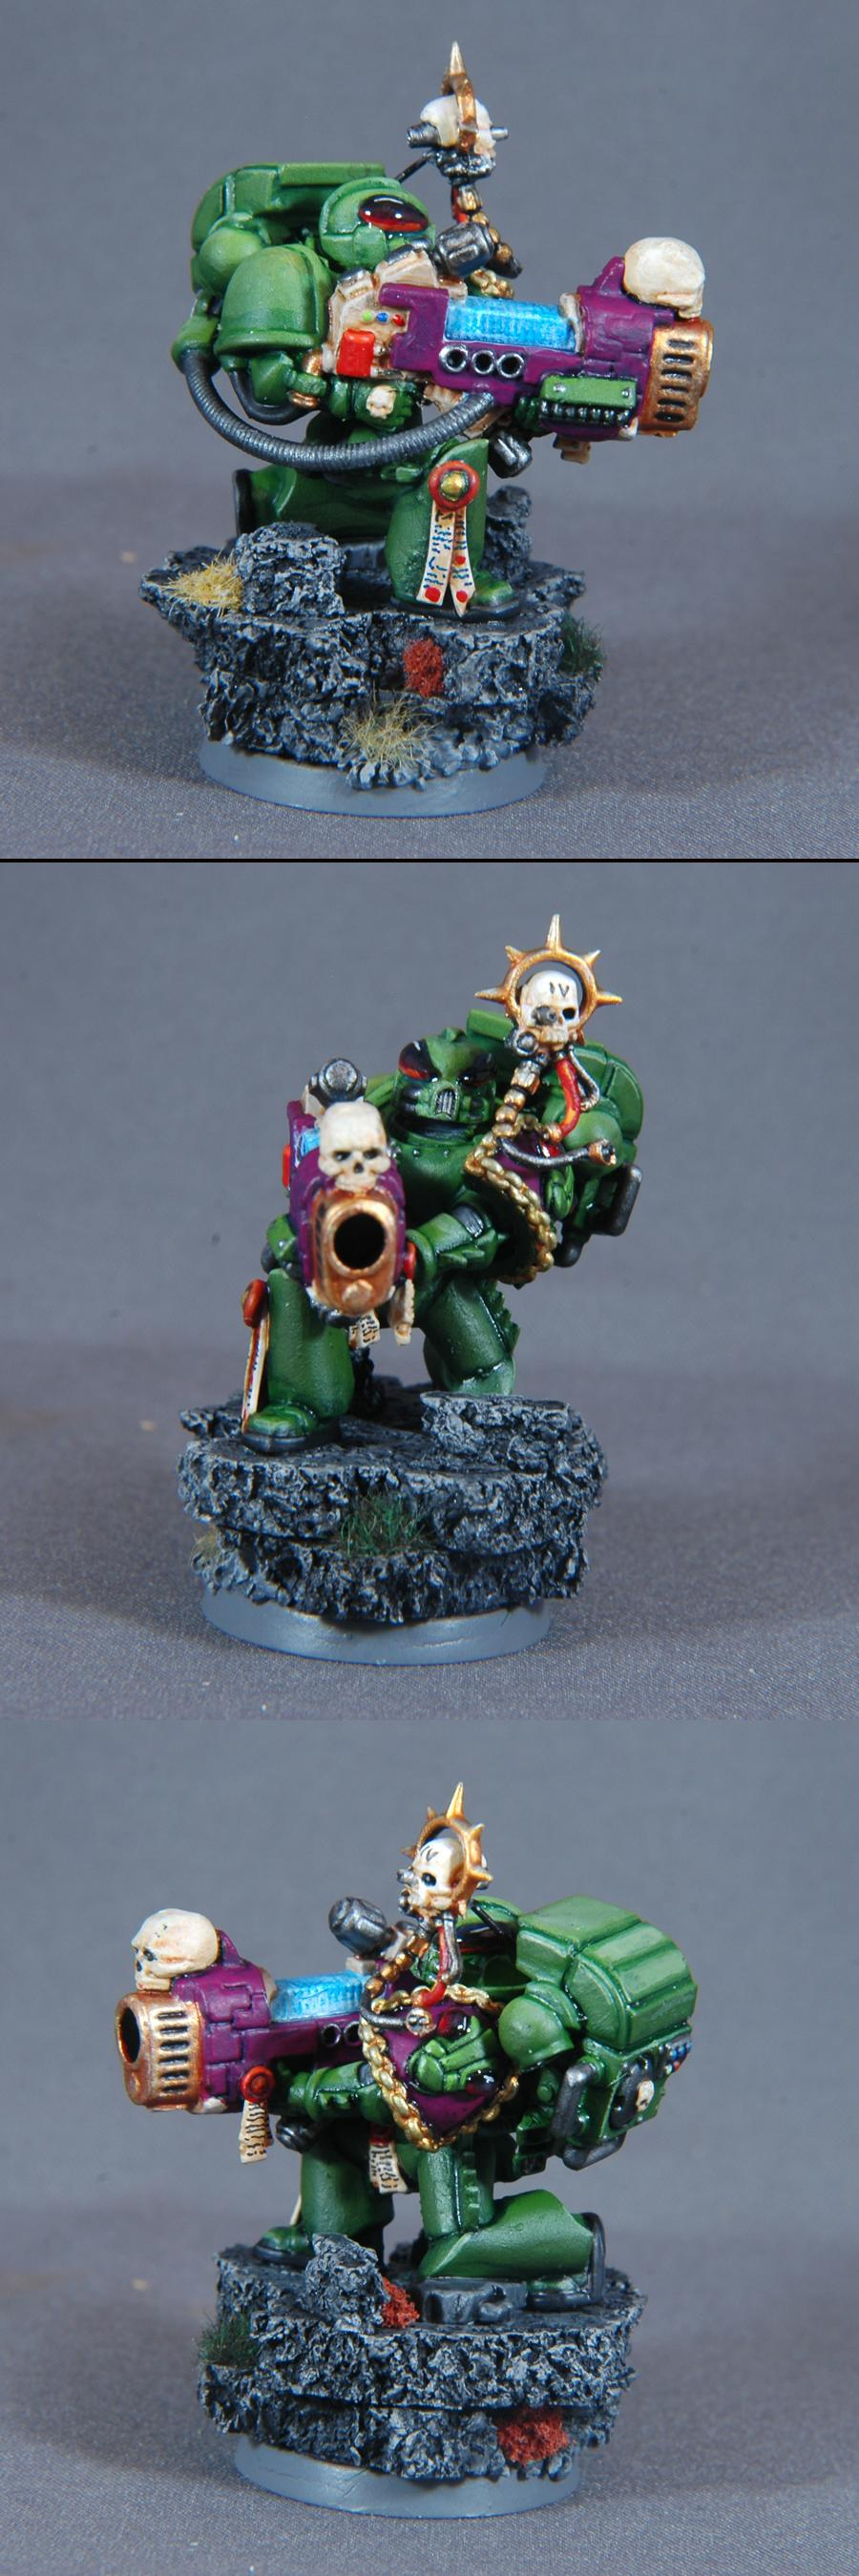 Gms, Space Marines, Warhammer 40,000